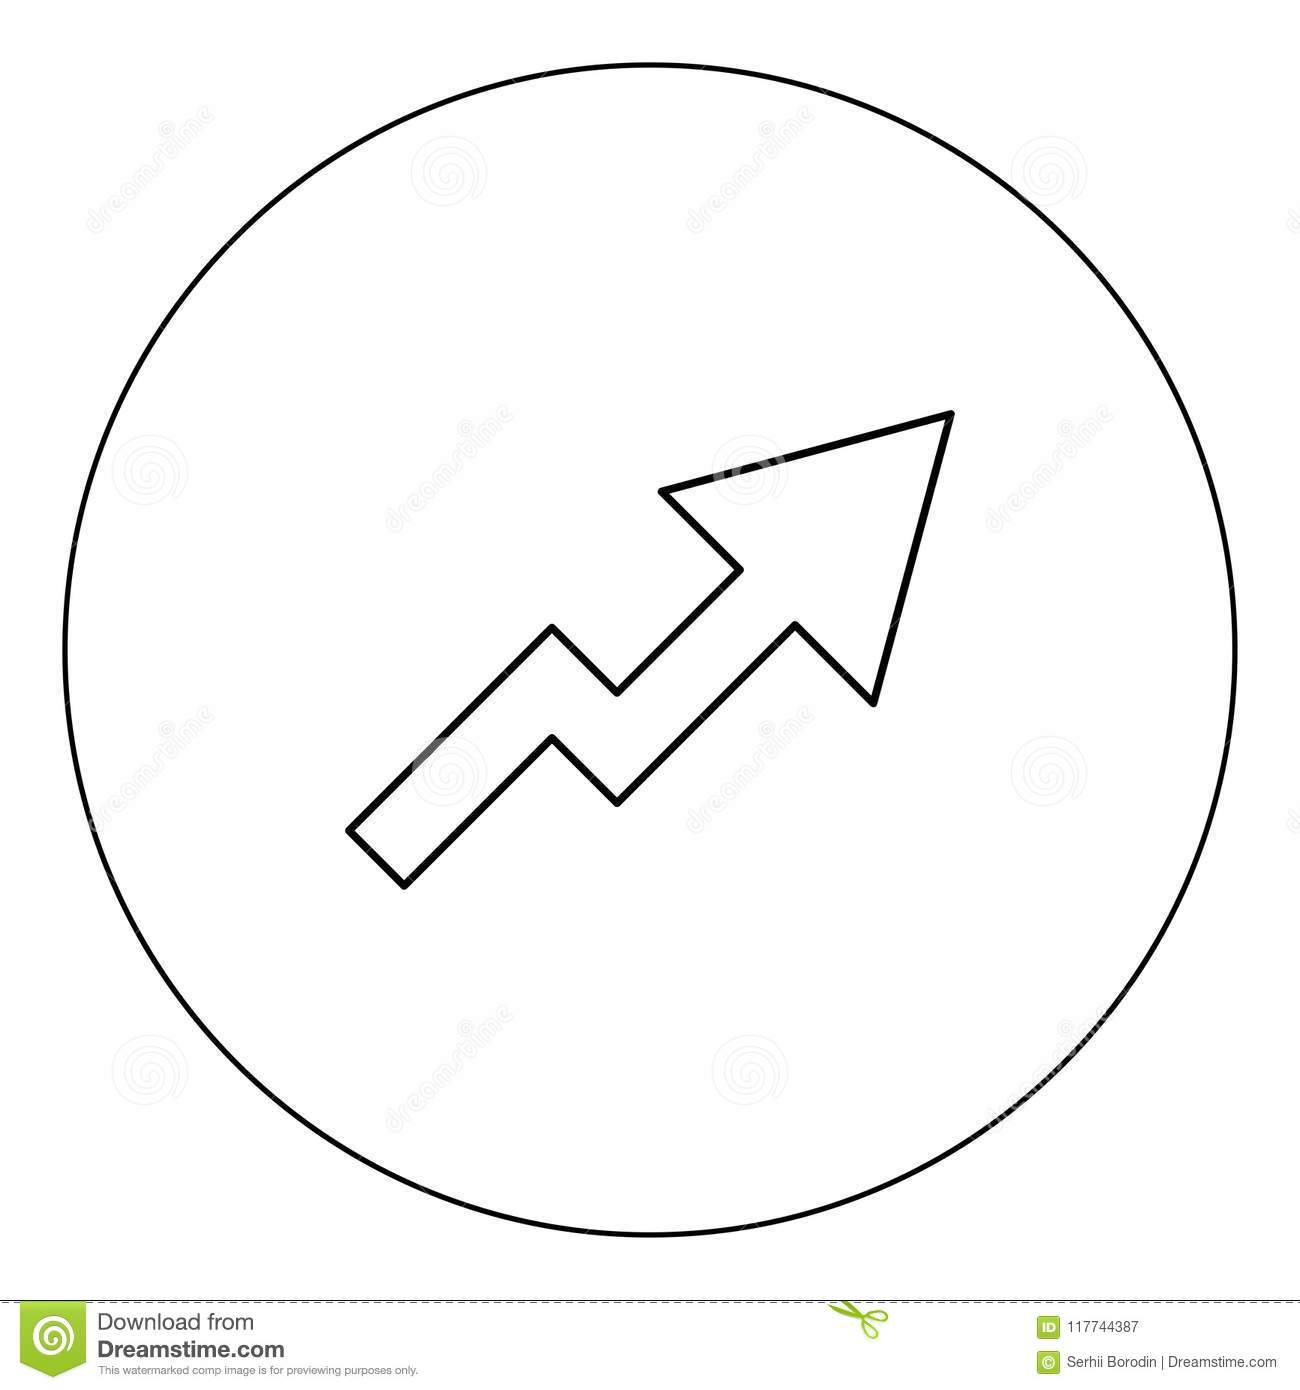 Chart Of Growth Icon Black Color In Circle Vector